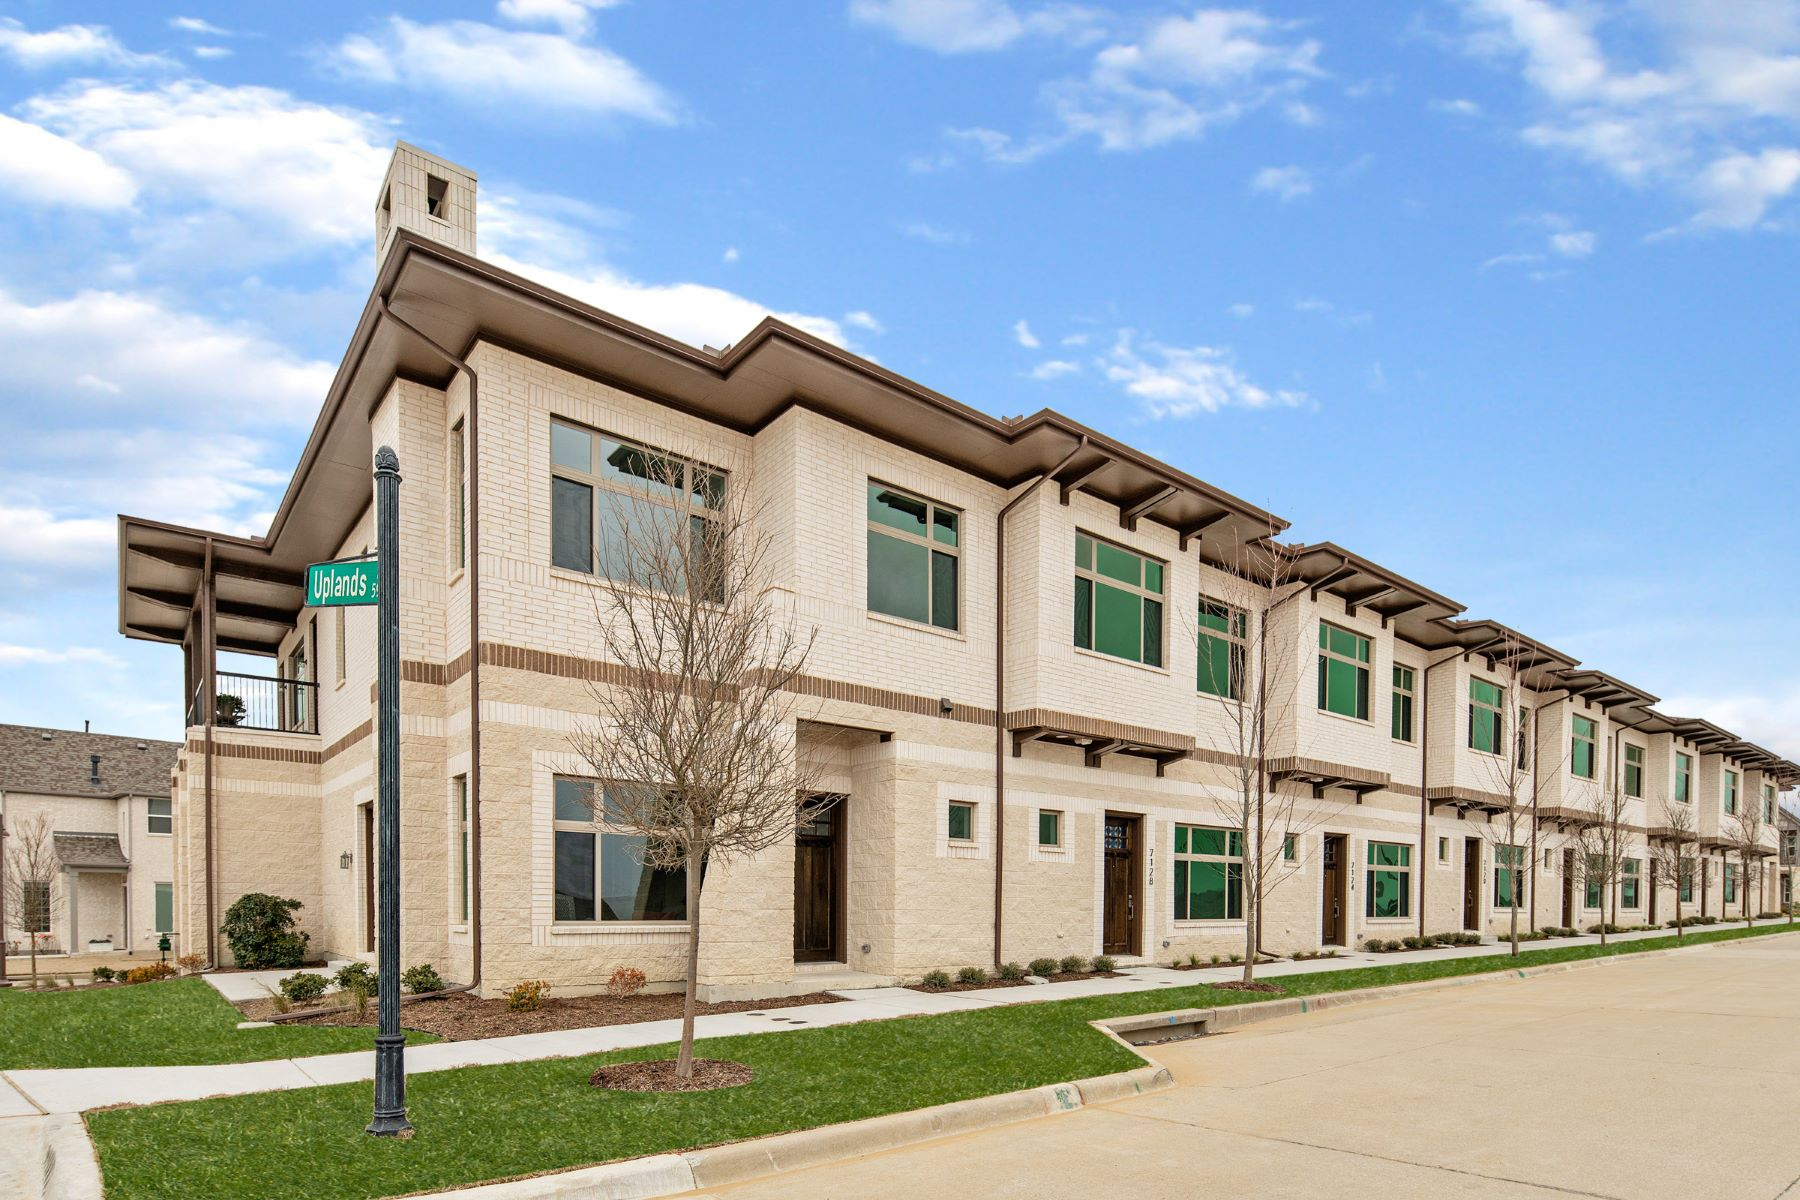 townhouses for Sale at 7116 Wessex Court, McKinney, TX, 75070 7116 Wessex Court McKinney, Texas 75070 United States